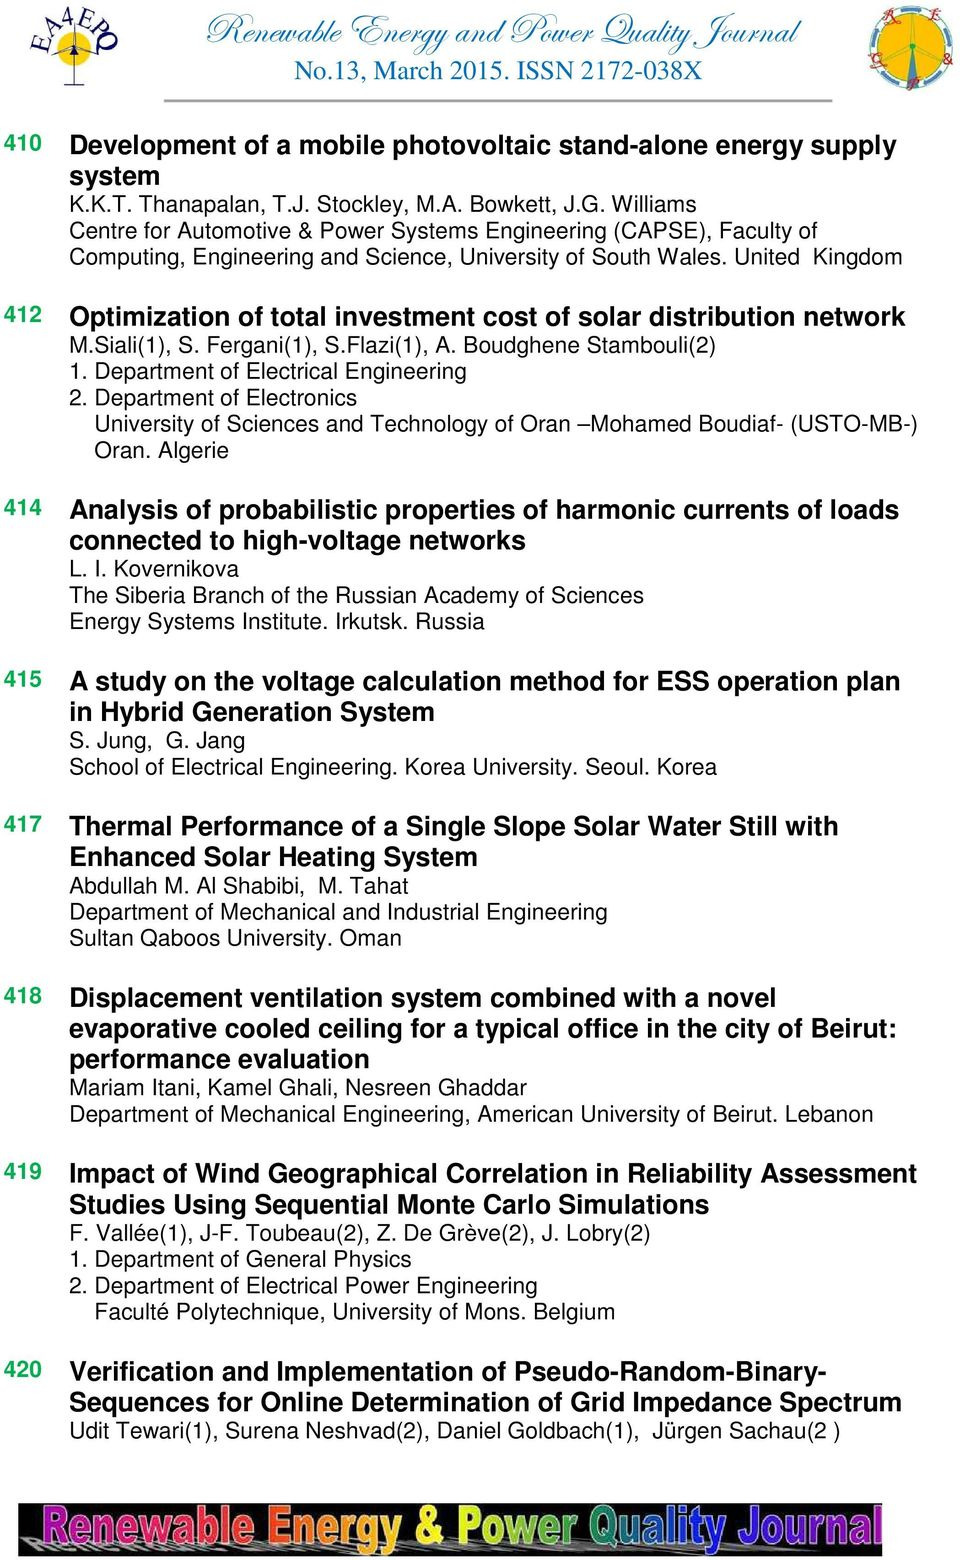 United Kingdom 412 Optimization of total investment cost of solar distribution network M.Siali(1), S. Fergani(1), S.Flazi(1), A. Boudghene Stambouli(2) 1. Department of Electrical Engineering 2.